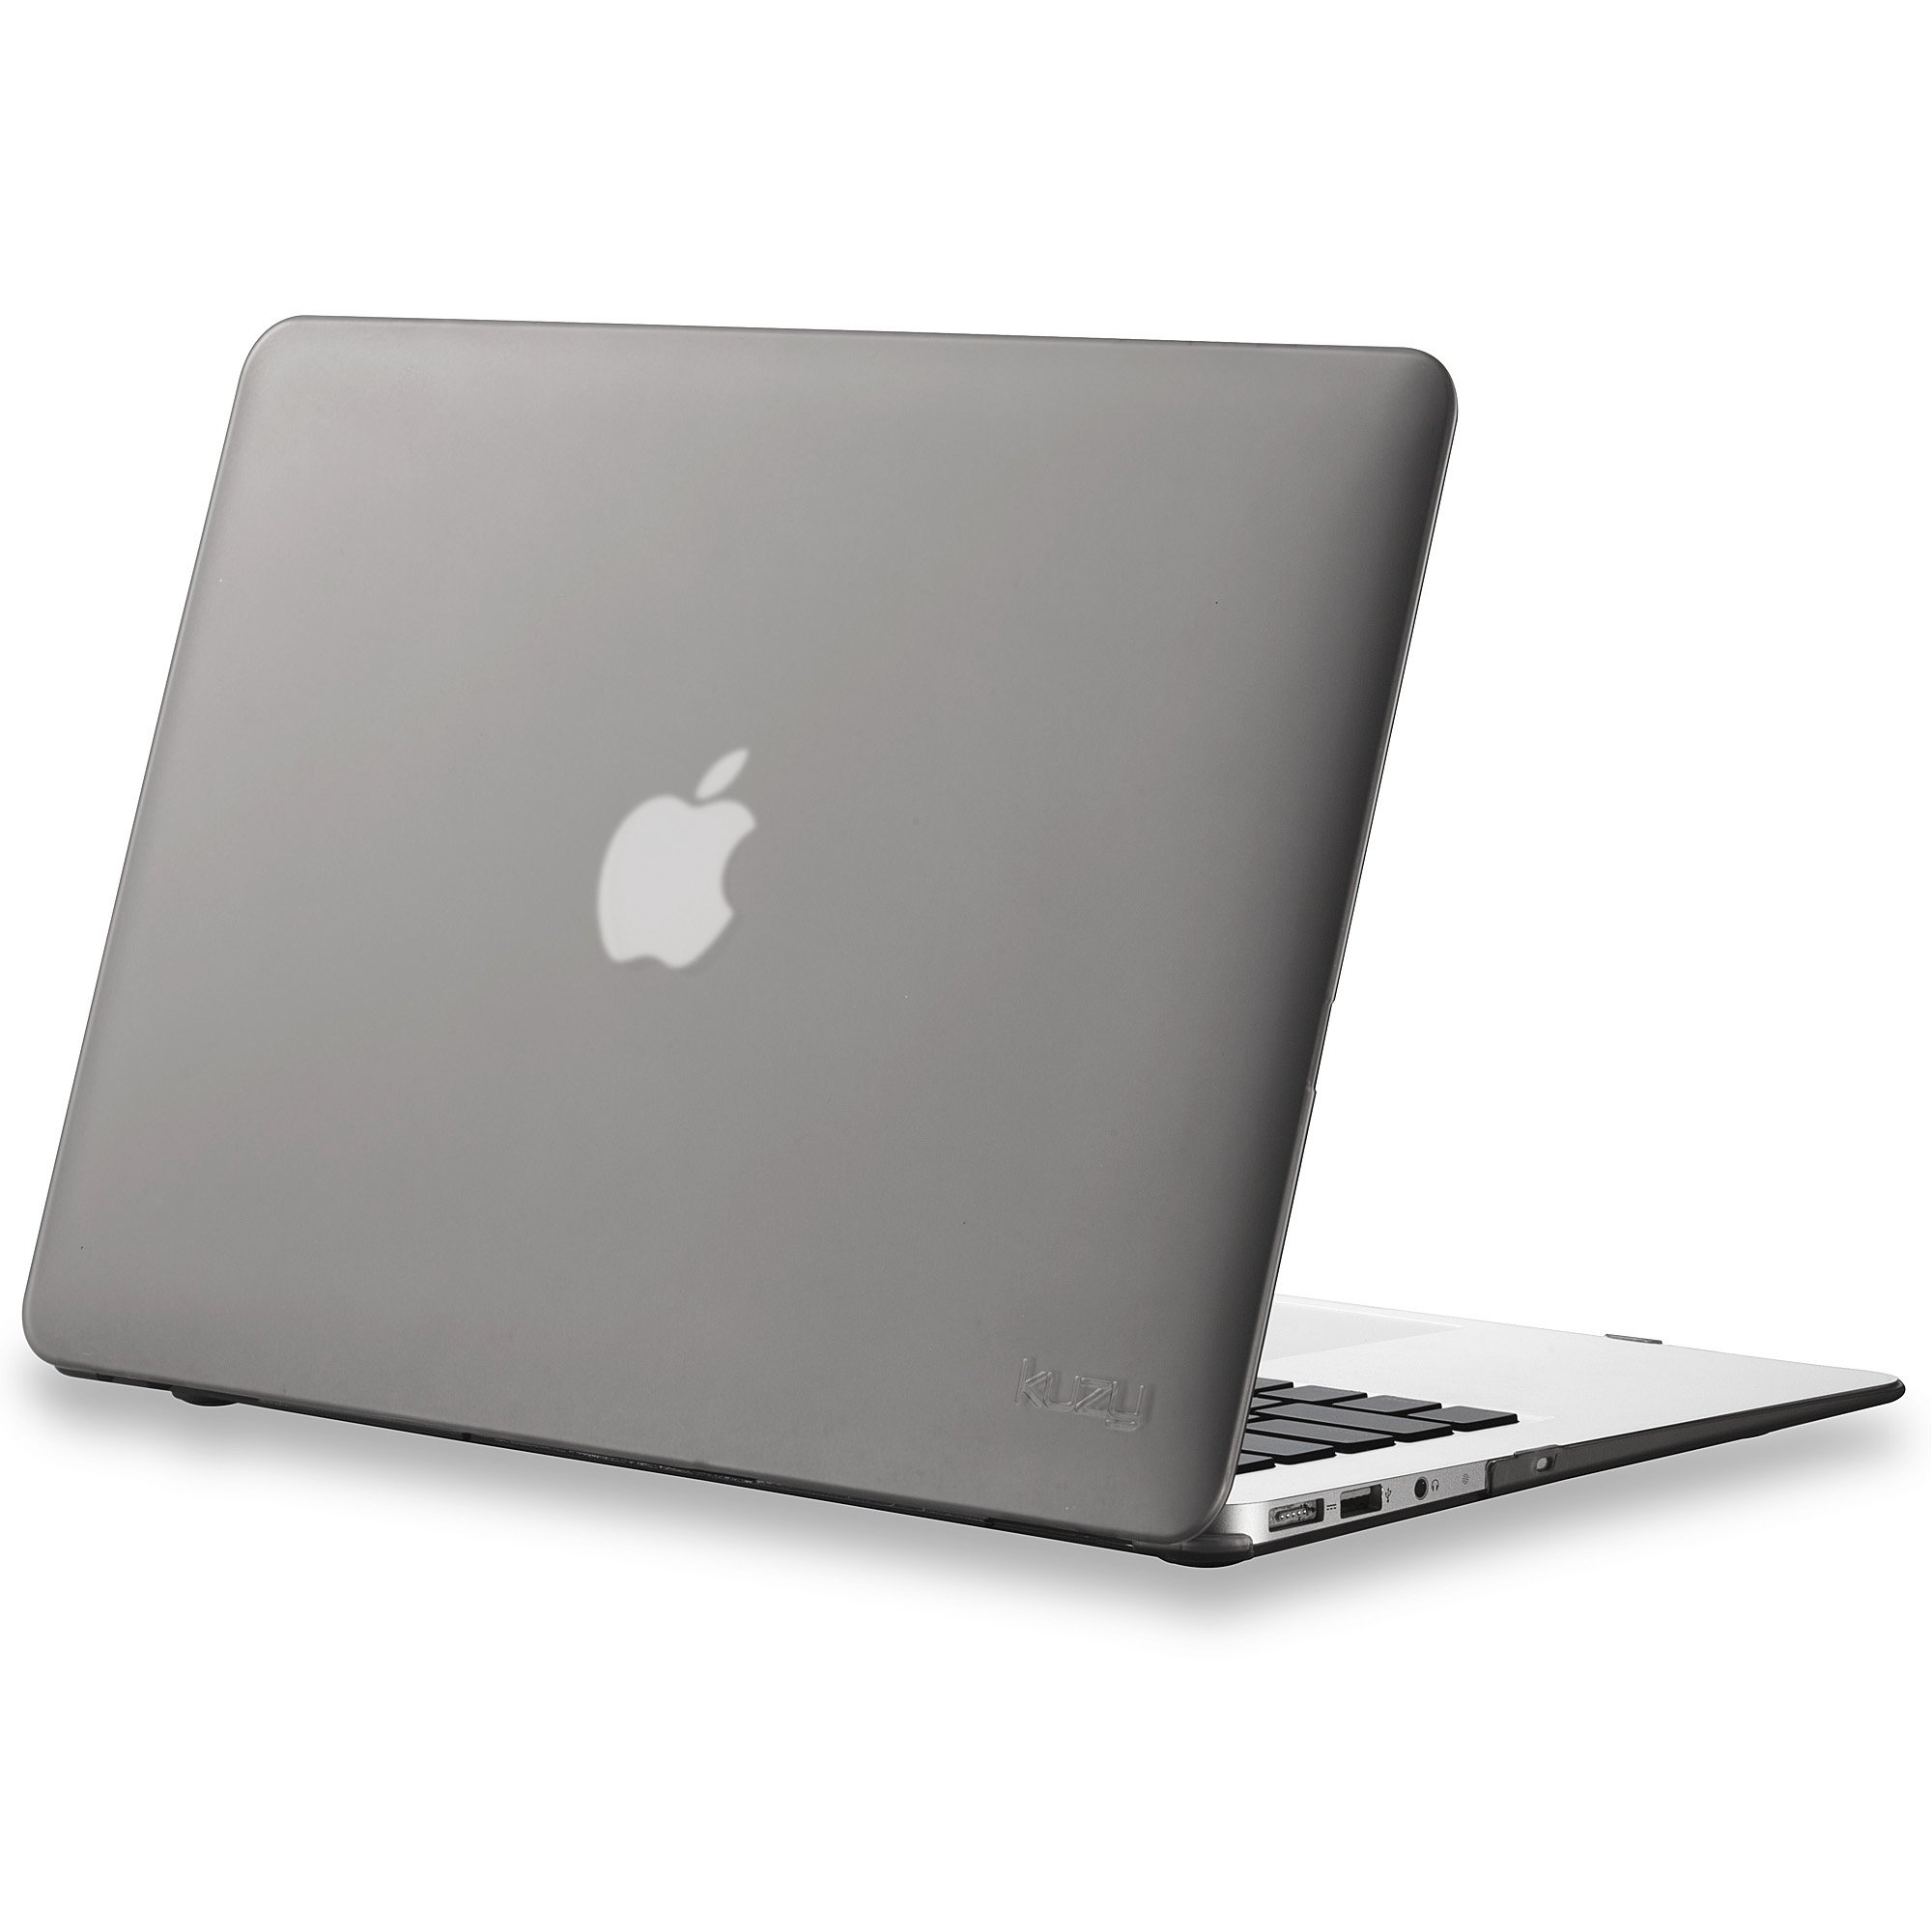 Kuzy AIR 13-inch GRAY Rubberized Hard Case for MacBook Air 13.3'' (A1466 & A1369) (NEWEST VERSION) Shell Cover - Gray